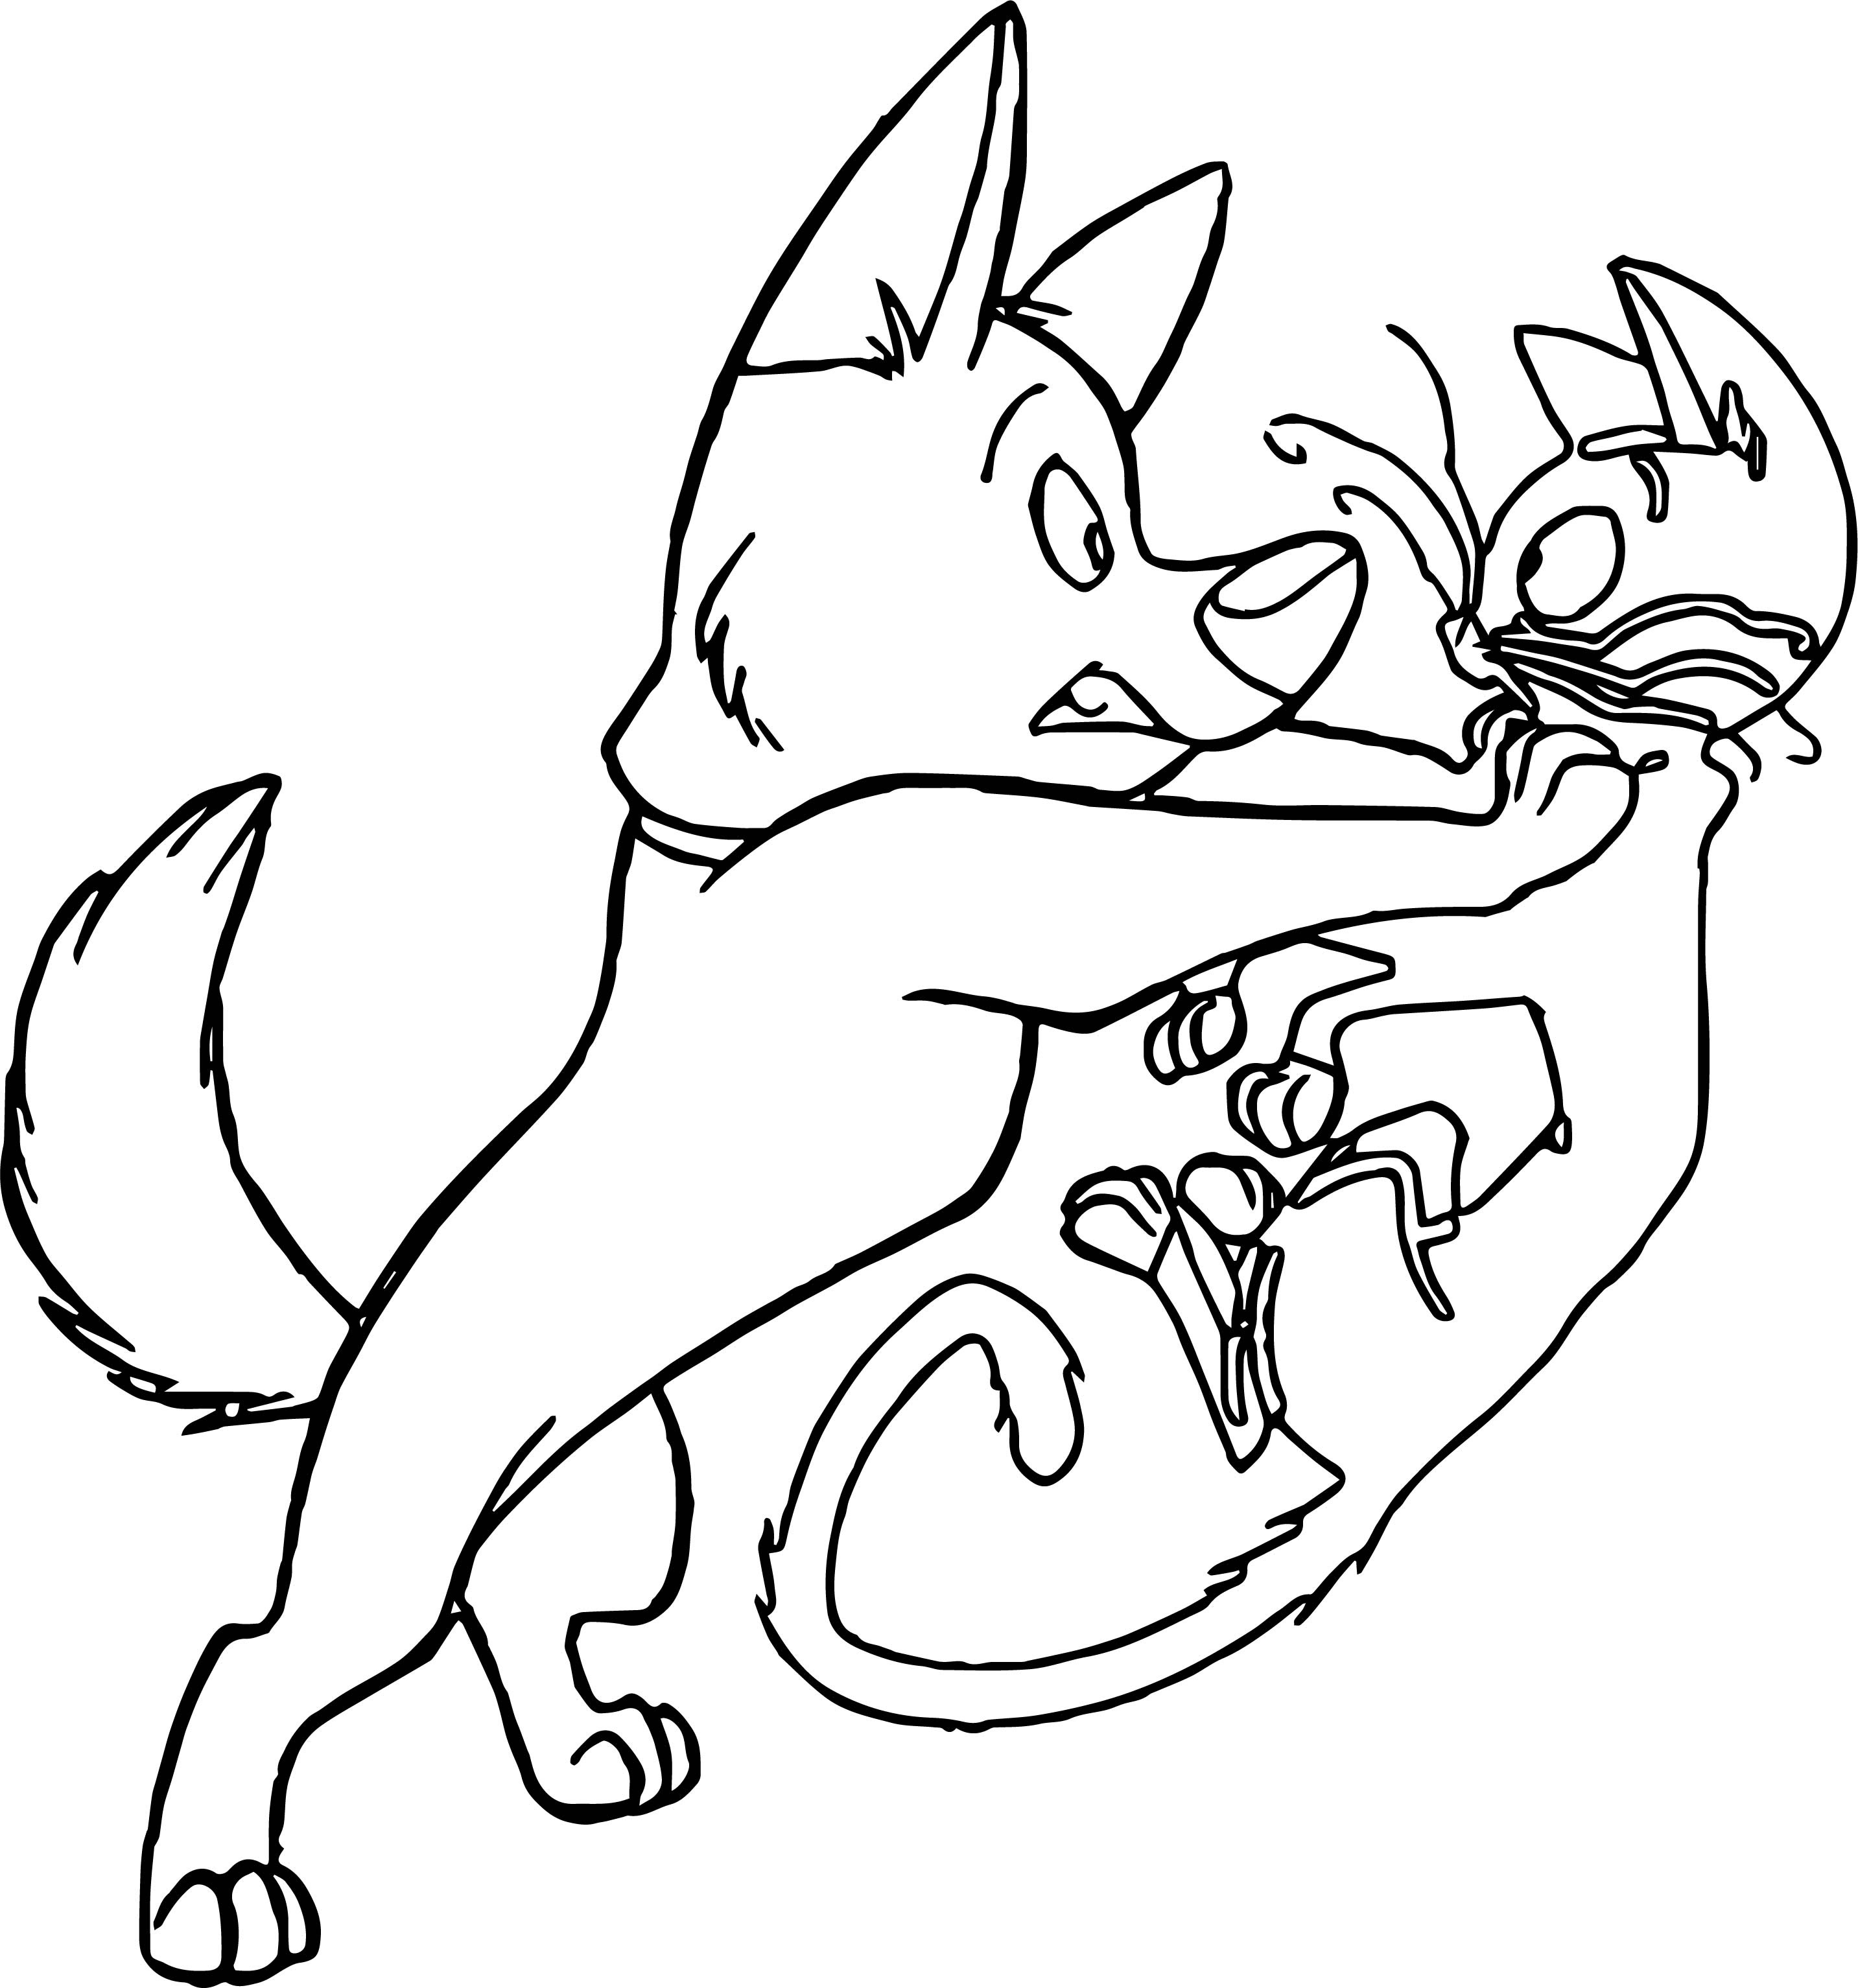 Bolt Dog Cat Where Coloring Pages | Wecoloringpage.com